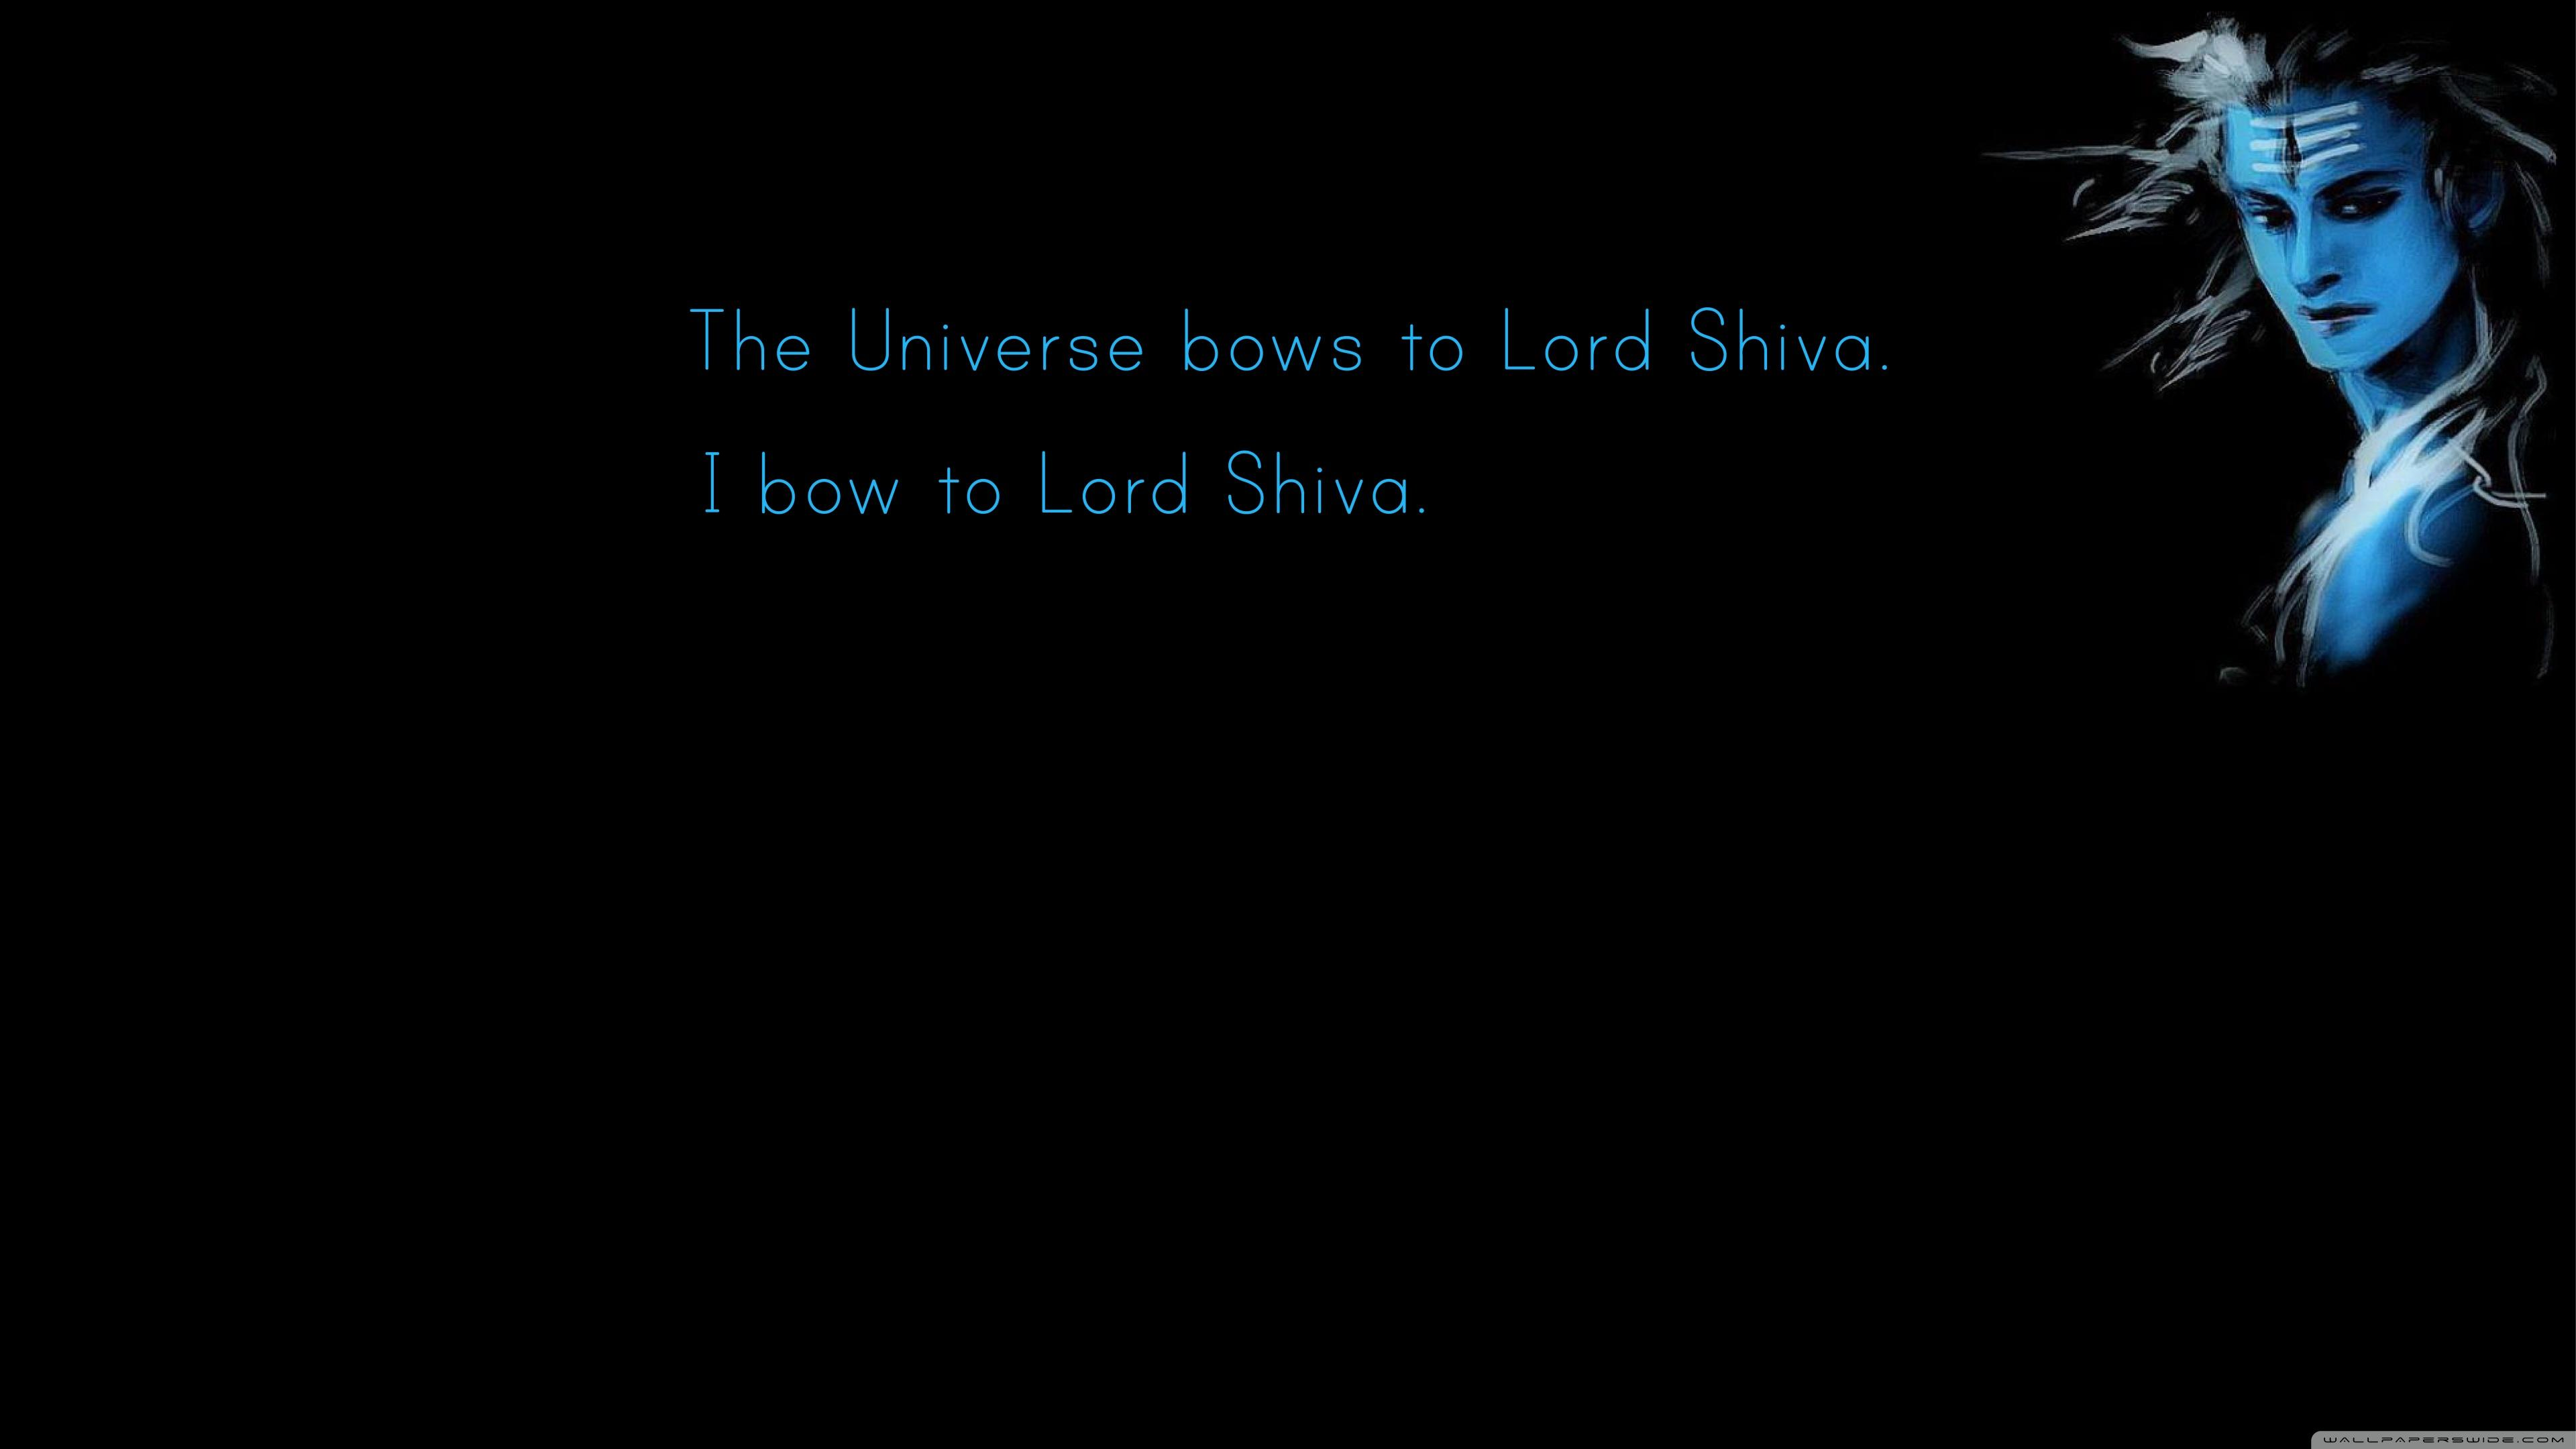 4k Lord Shiva Wallpapers Top Free 4k Lord Shiva Backgrounds Wallpaperaccess